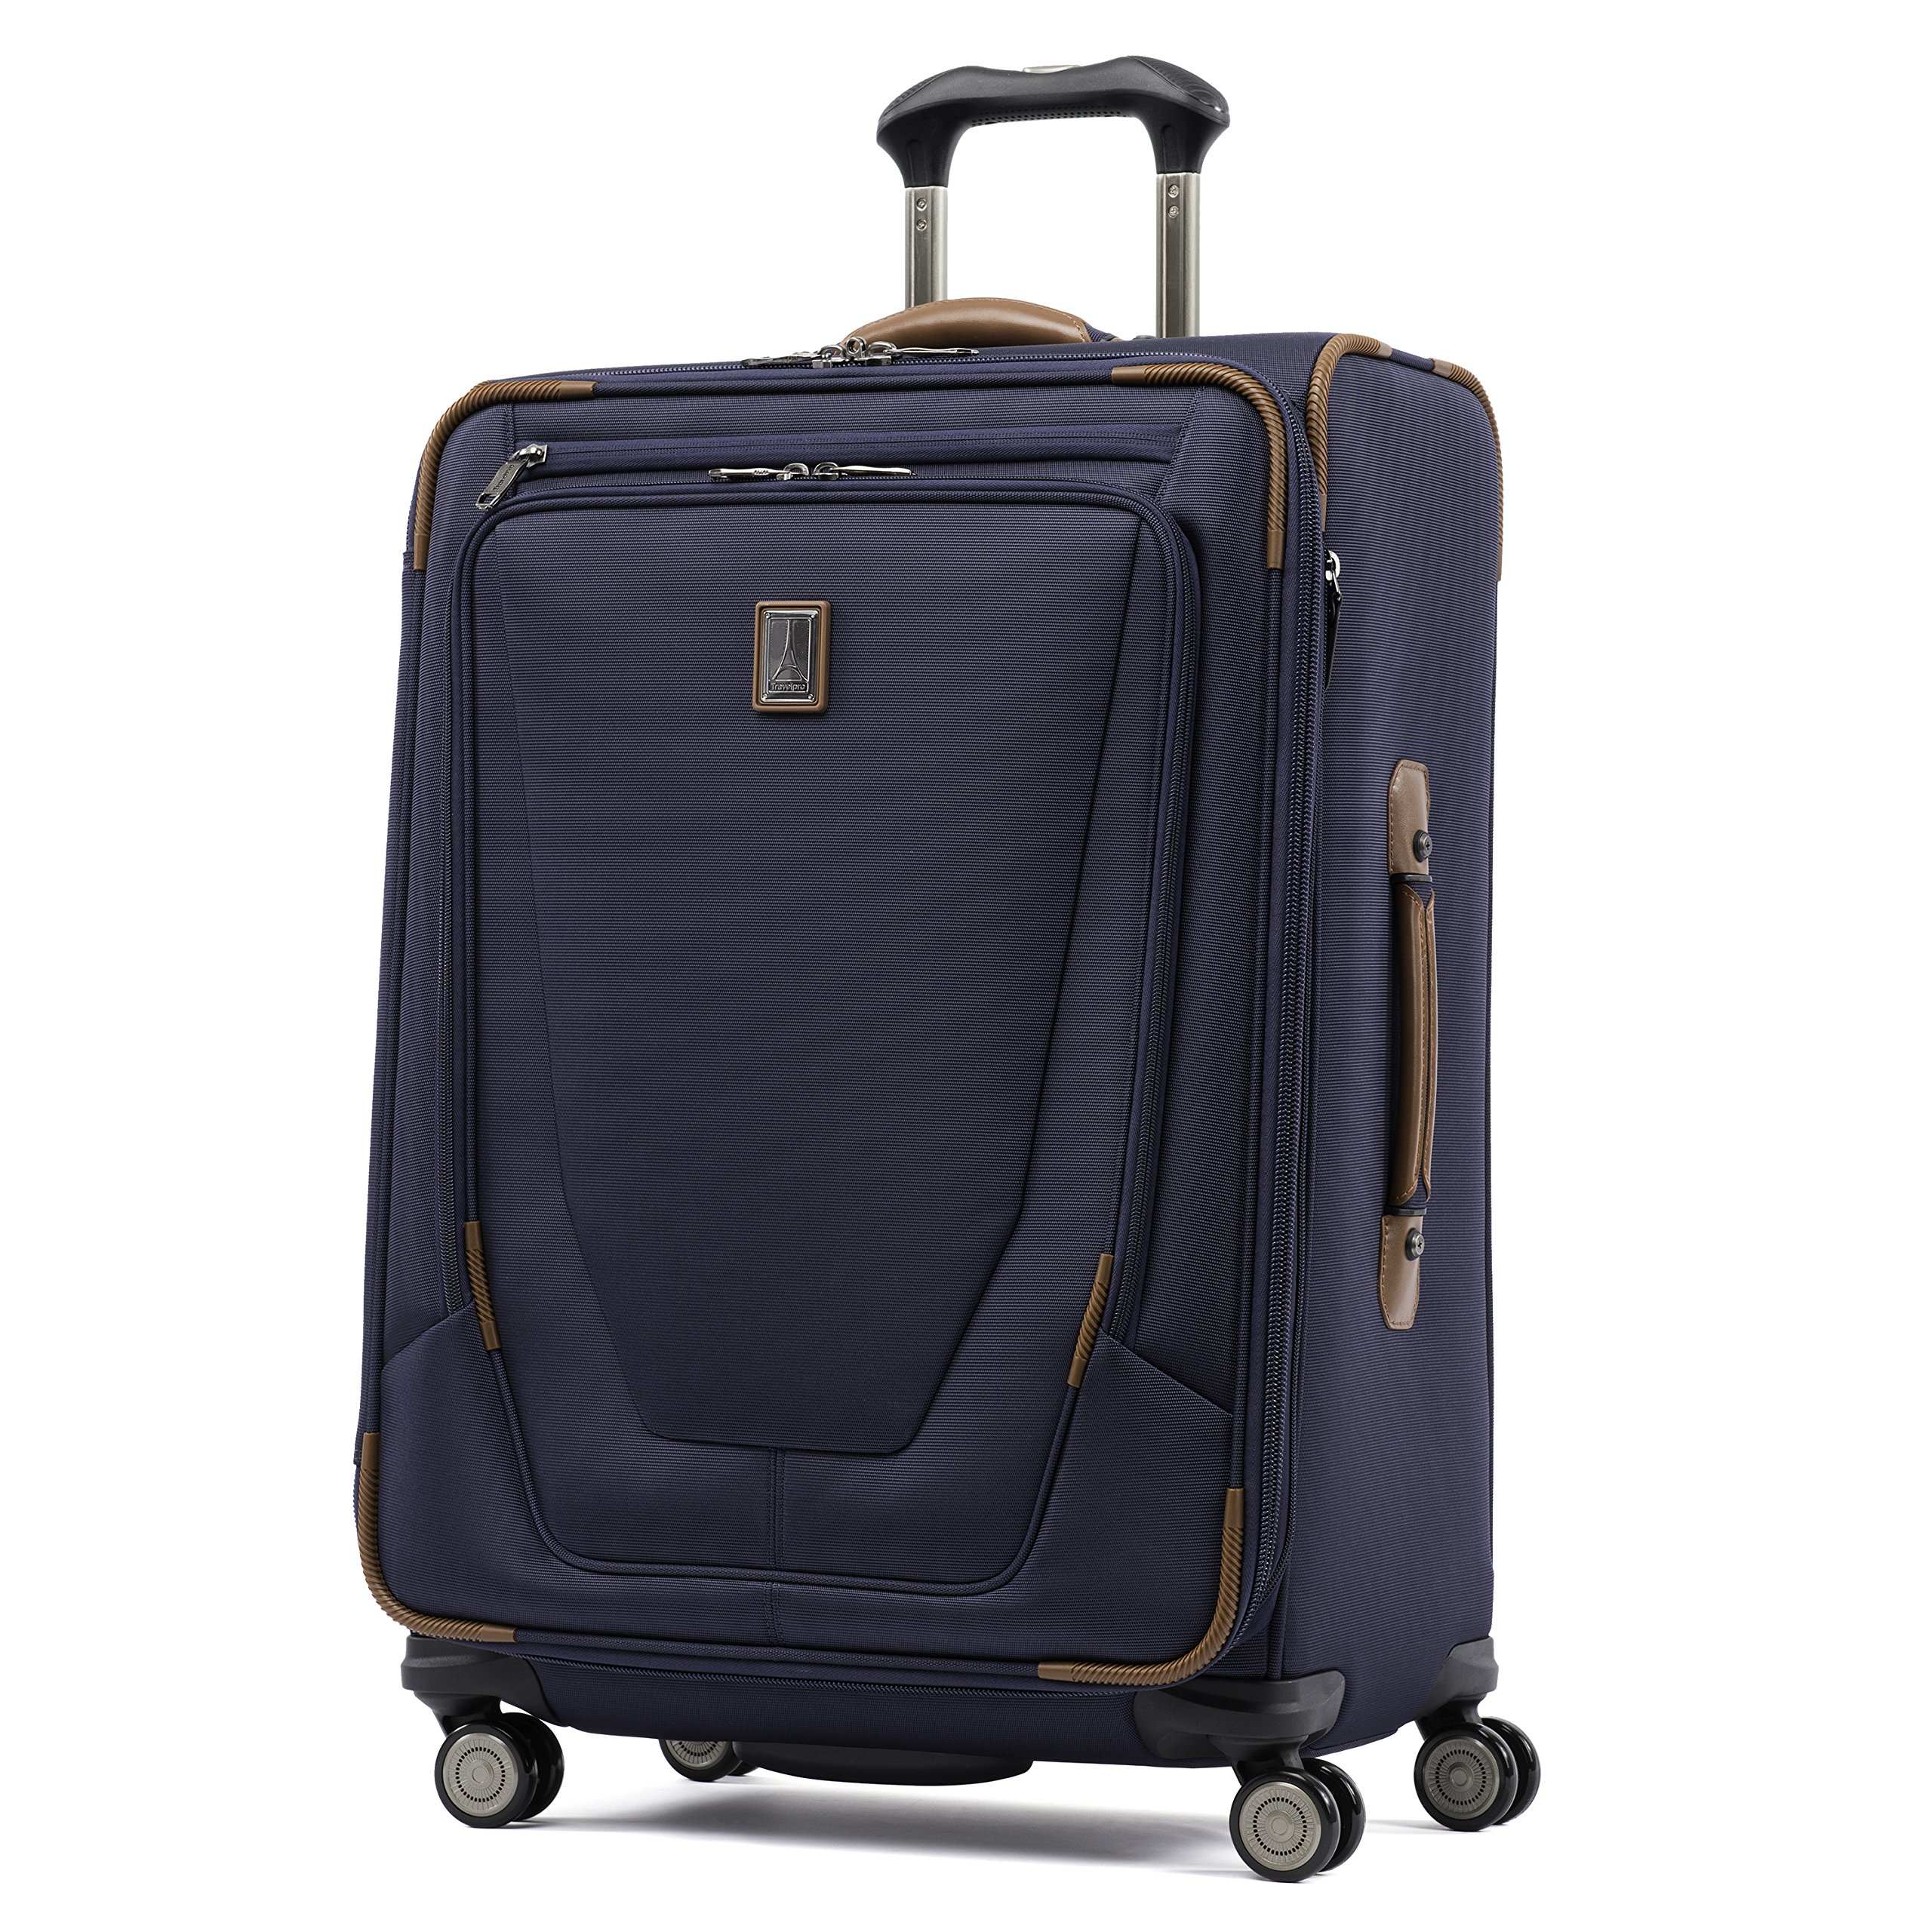 Travelpro Luggage Crew 11 25'' Expandable Spinner Suitcase w/Suiter, Patriot Blue by Travelpro